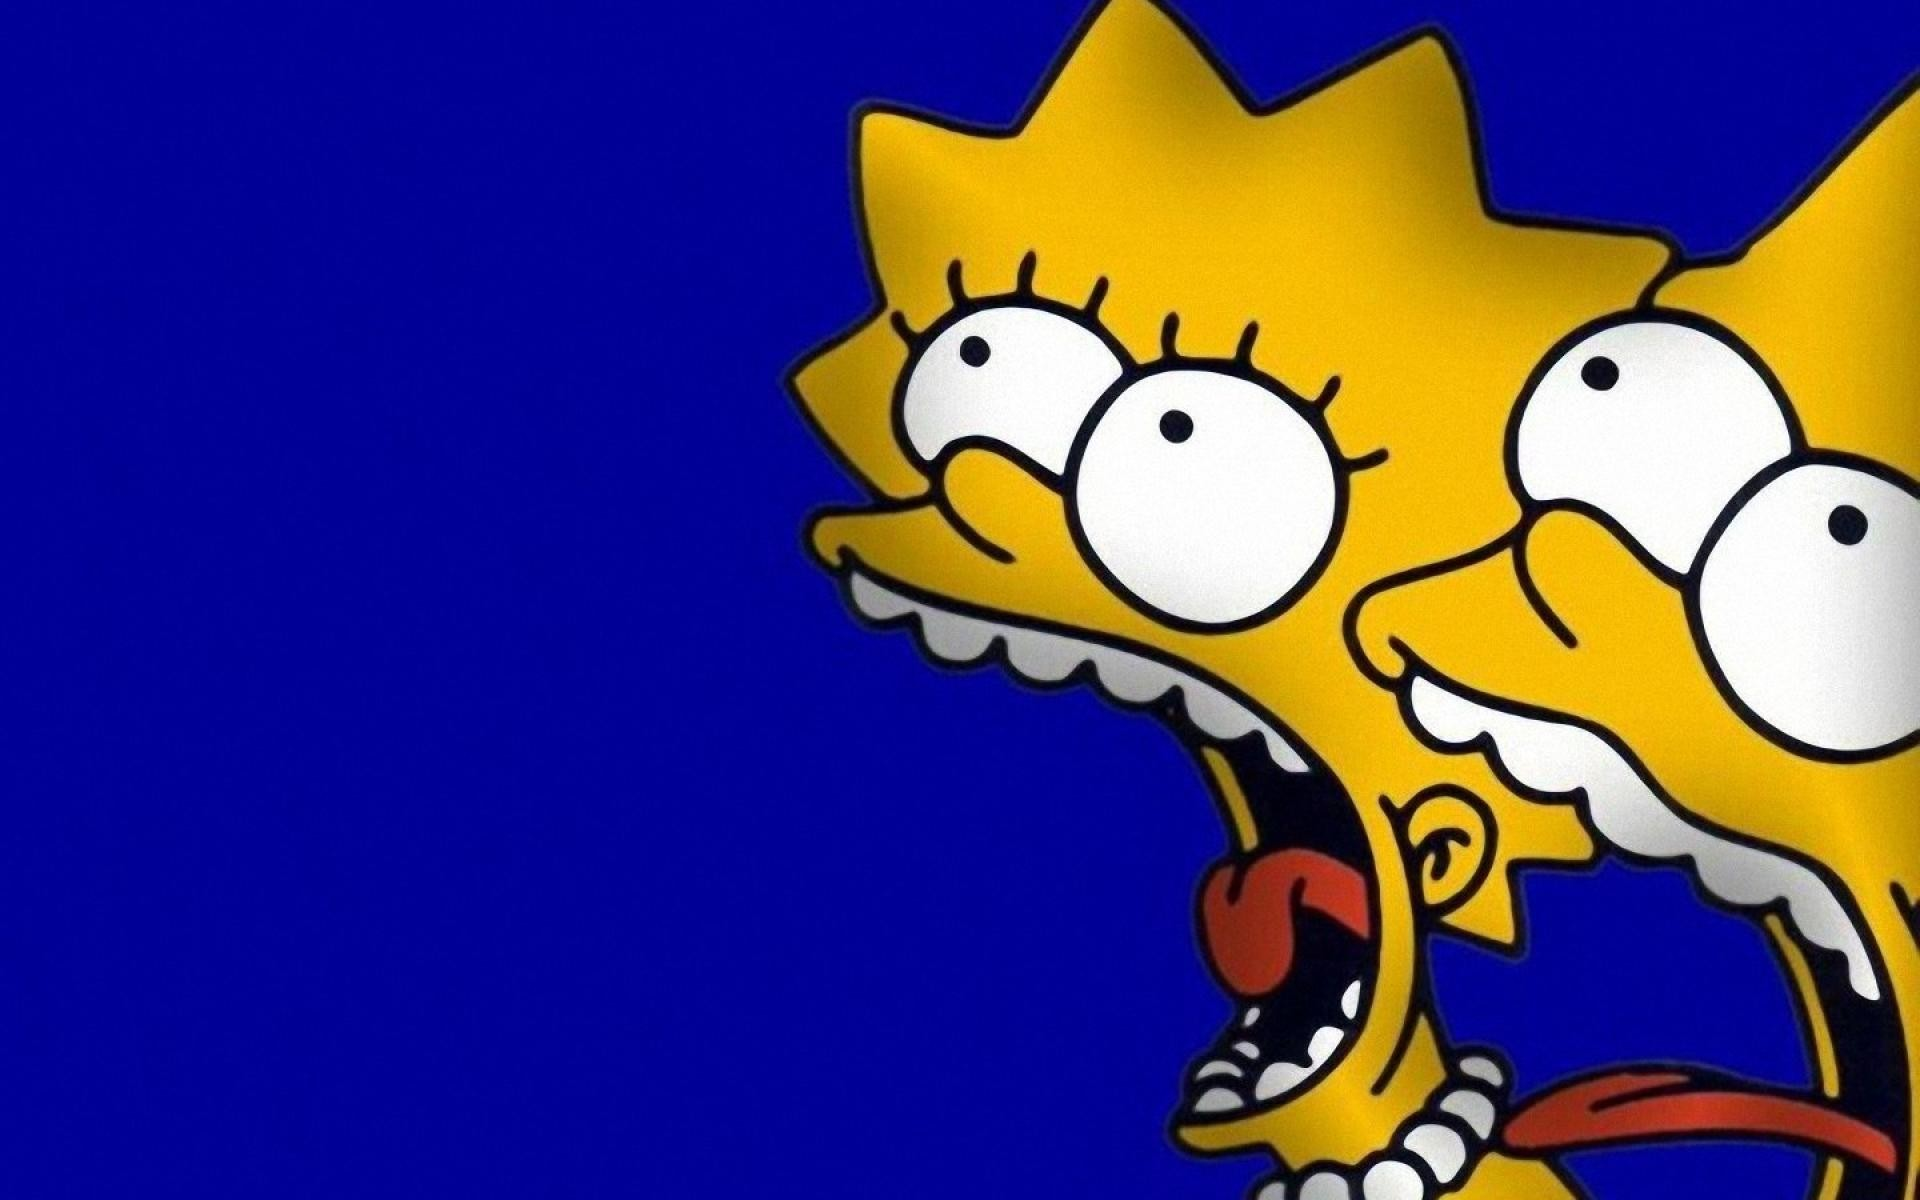 Download Background Black Homer Papers Simpsons Wallpaper - Bart Simpson Freaked Out - HD Wallpaper